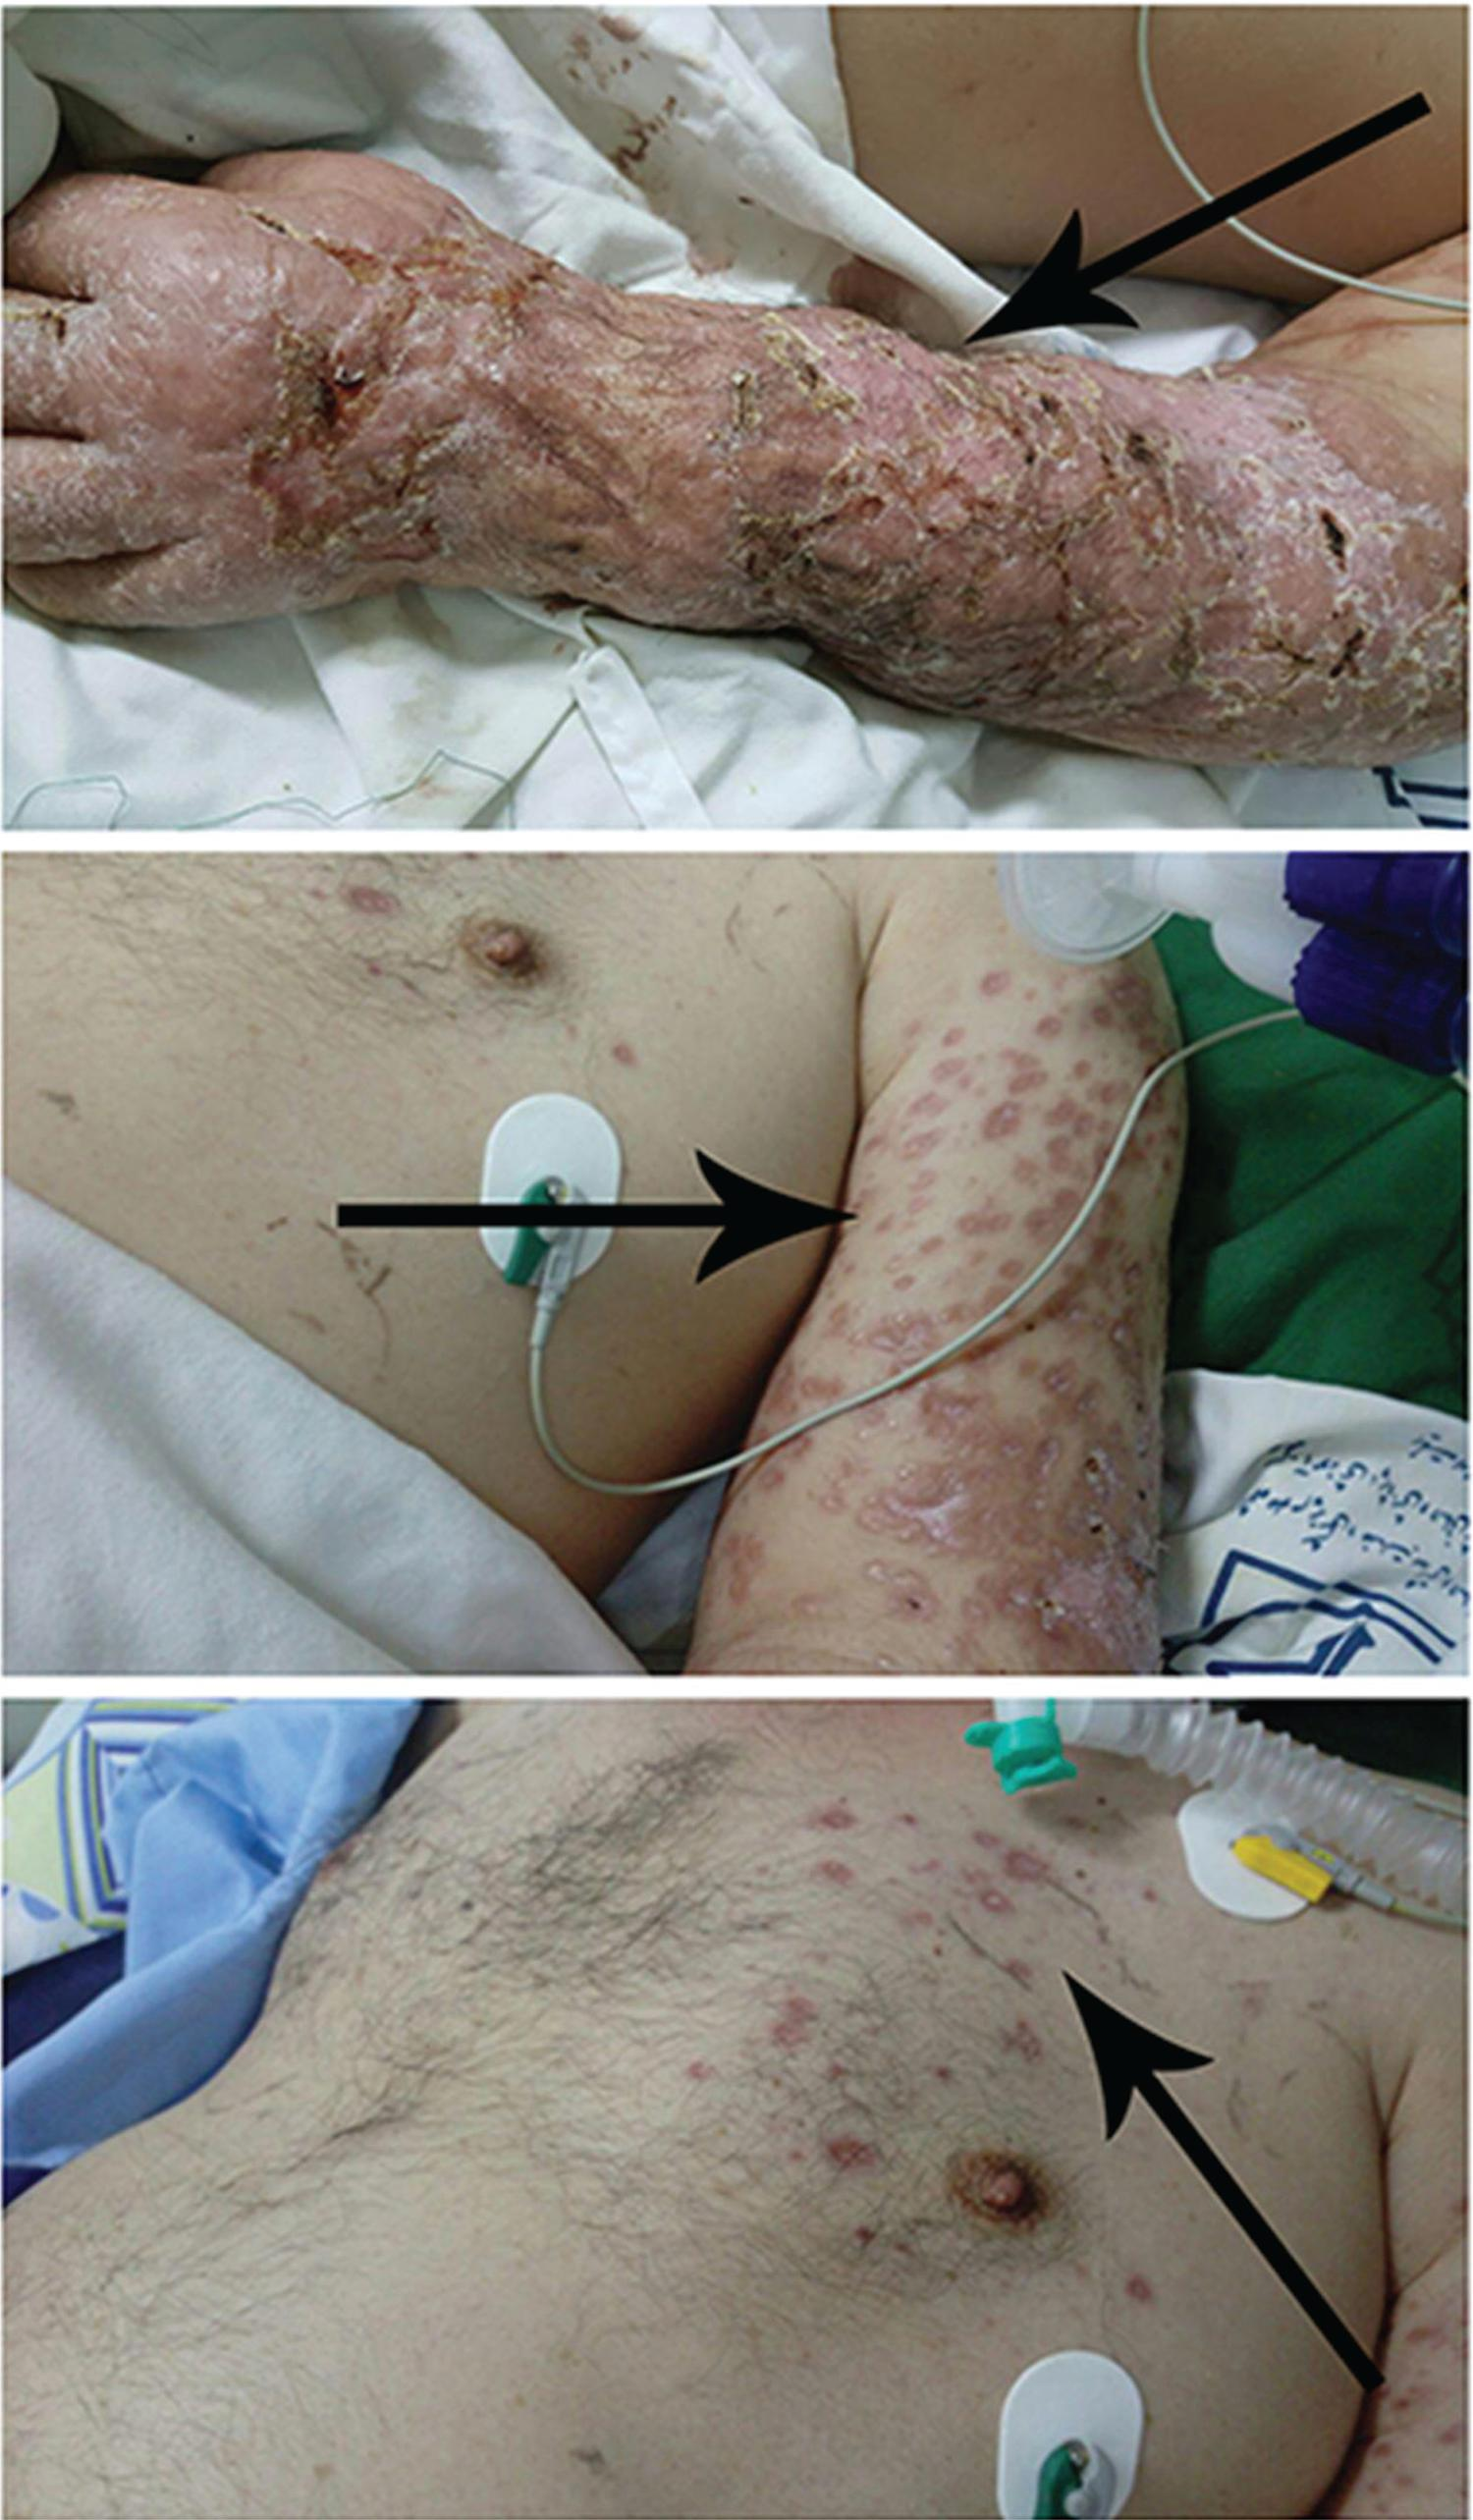 - Patient with atypical disseminated cutaneous leishmaniasis (DCL) showing good response to treatment with amphotericin B and regression of his cutaneous lesions